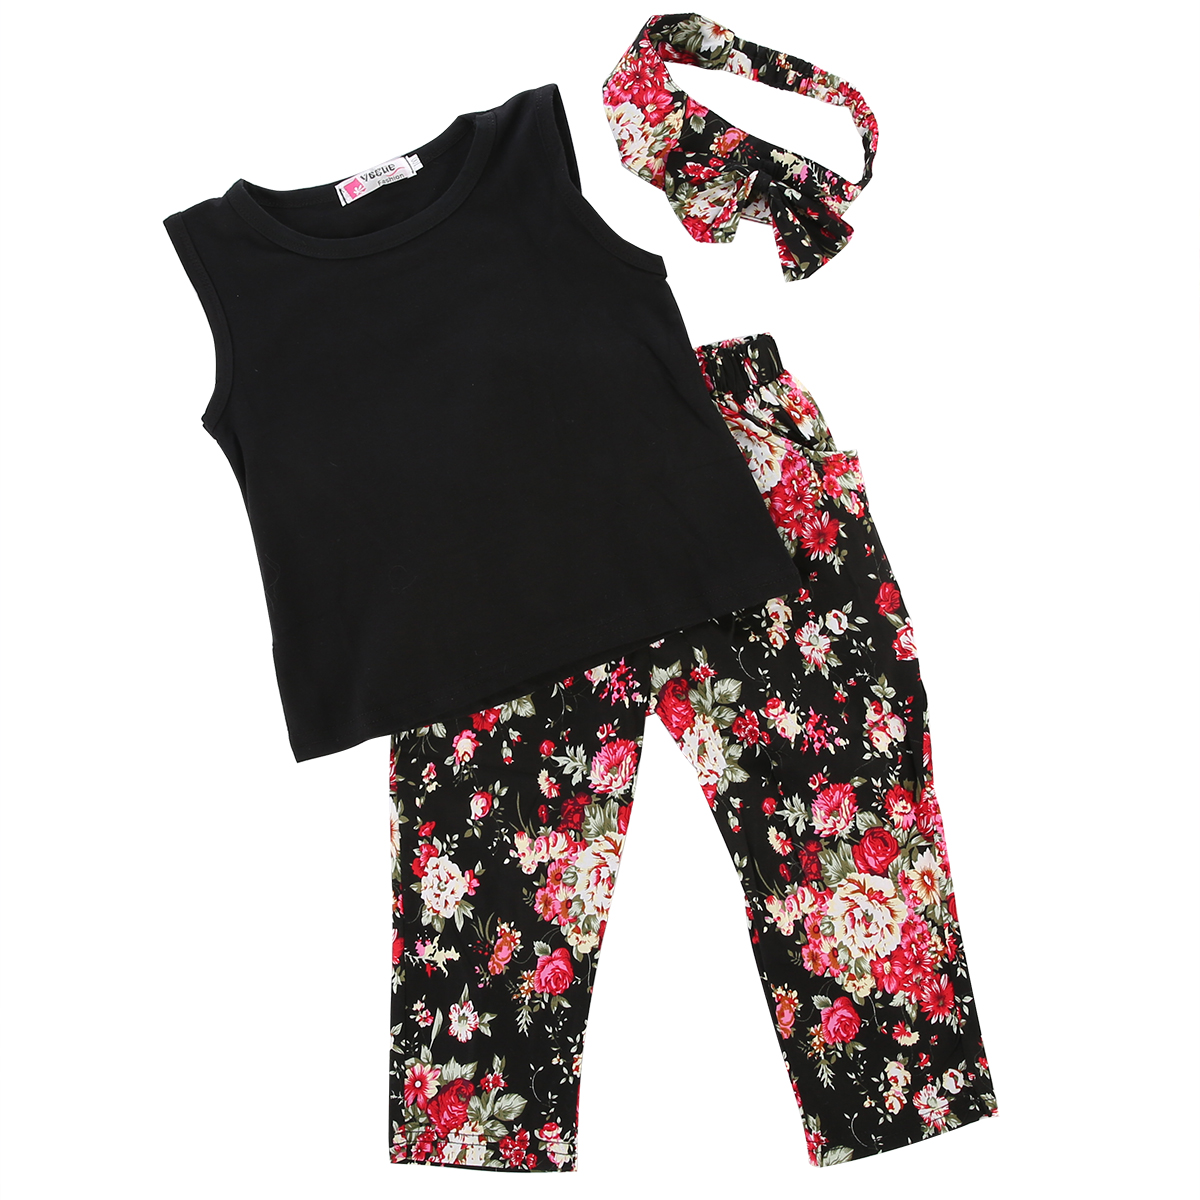 New Casual Cute Infant Toddler Kids Baby Girls Outfits Summer Vest Sleeveless Tops Floral Long Pants Clothes Set 1-8T 3Pcs